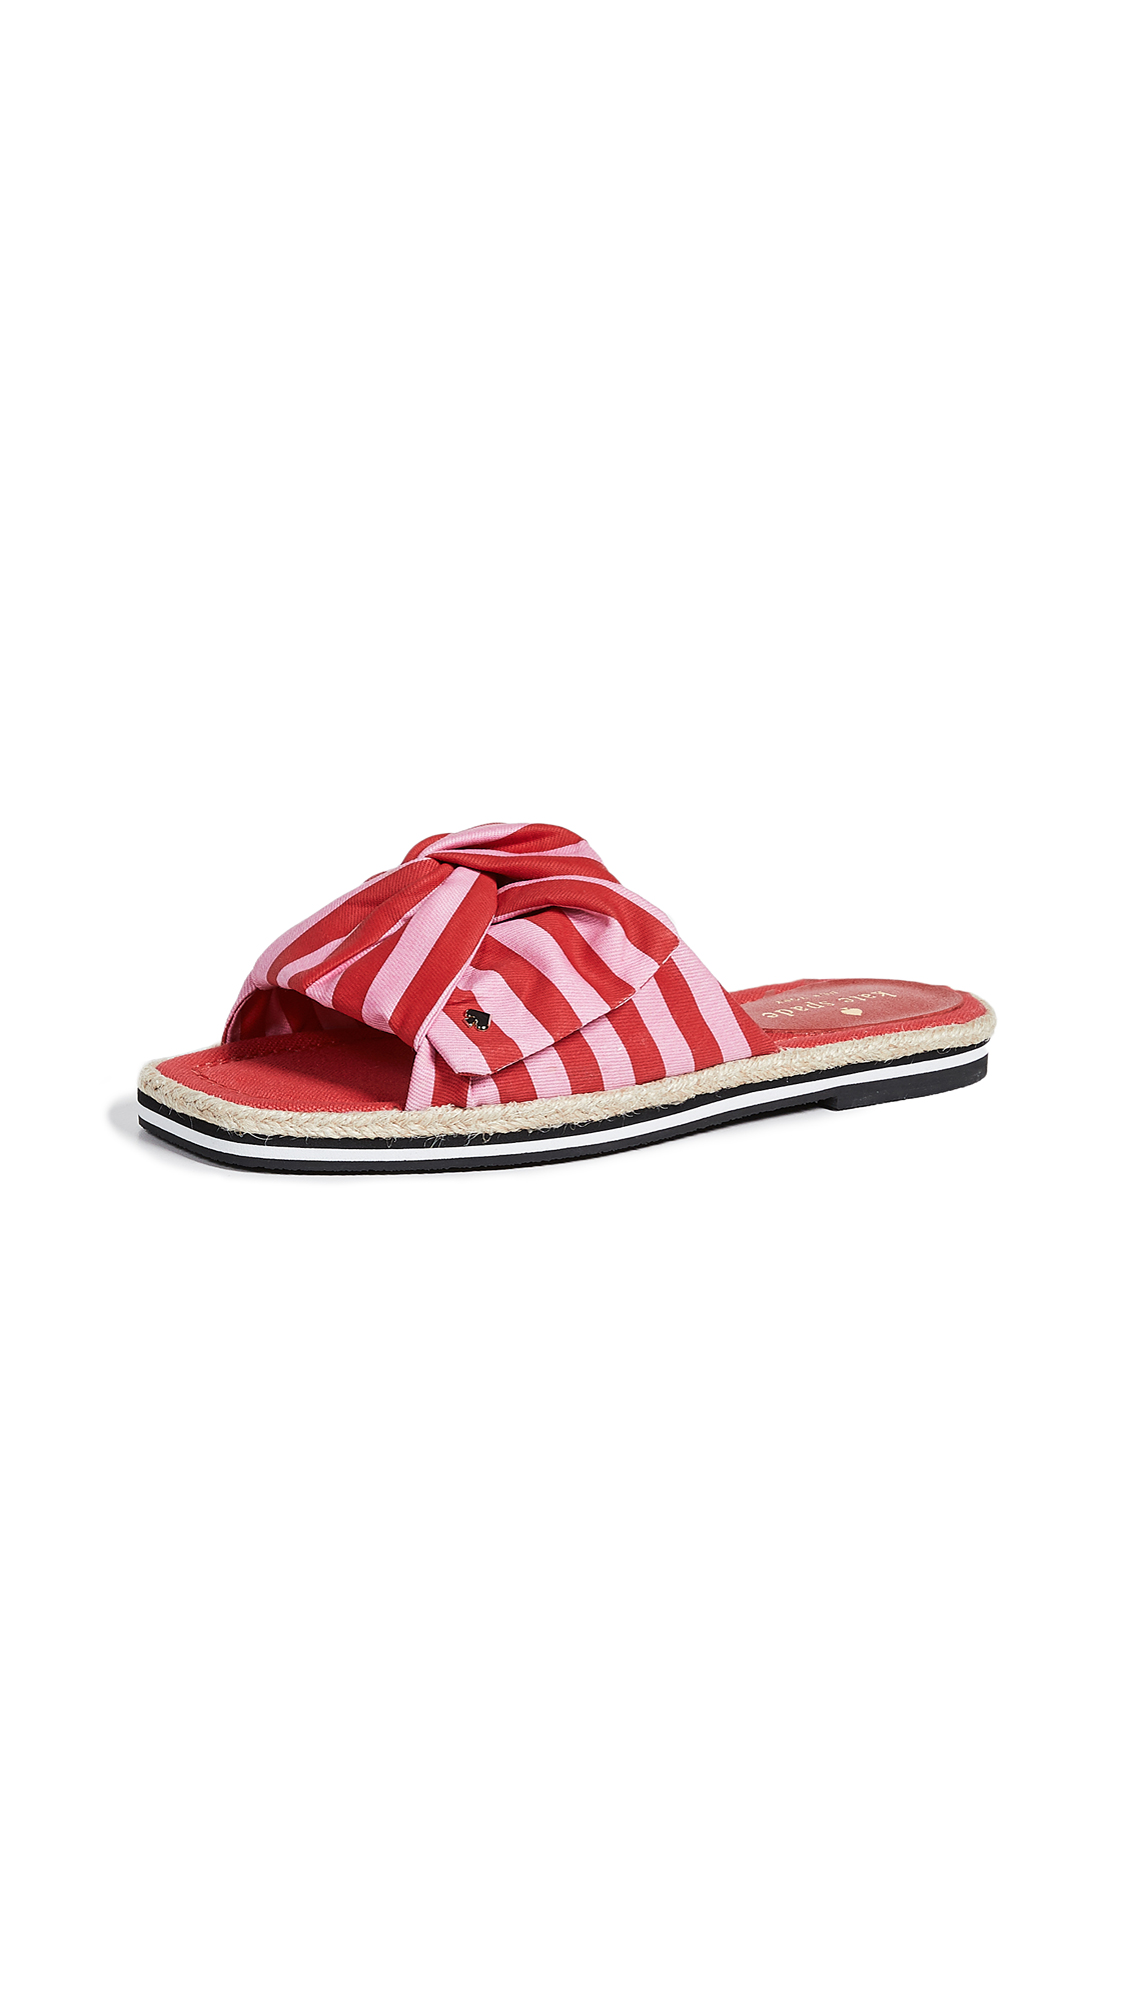 Kate Spade New York Caliana Striped Slides - Pink/Red